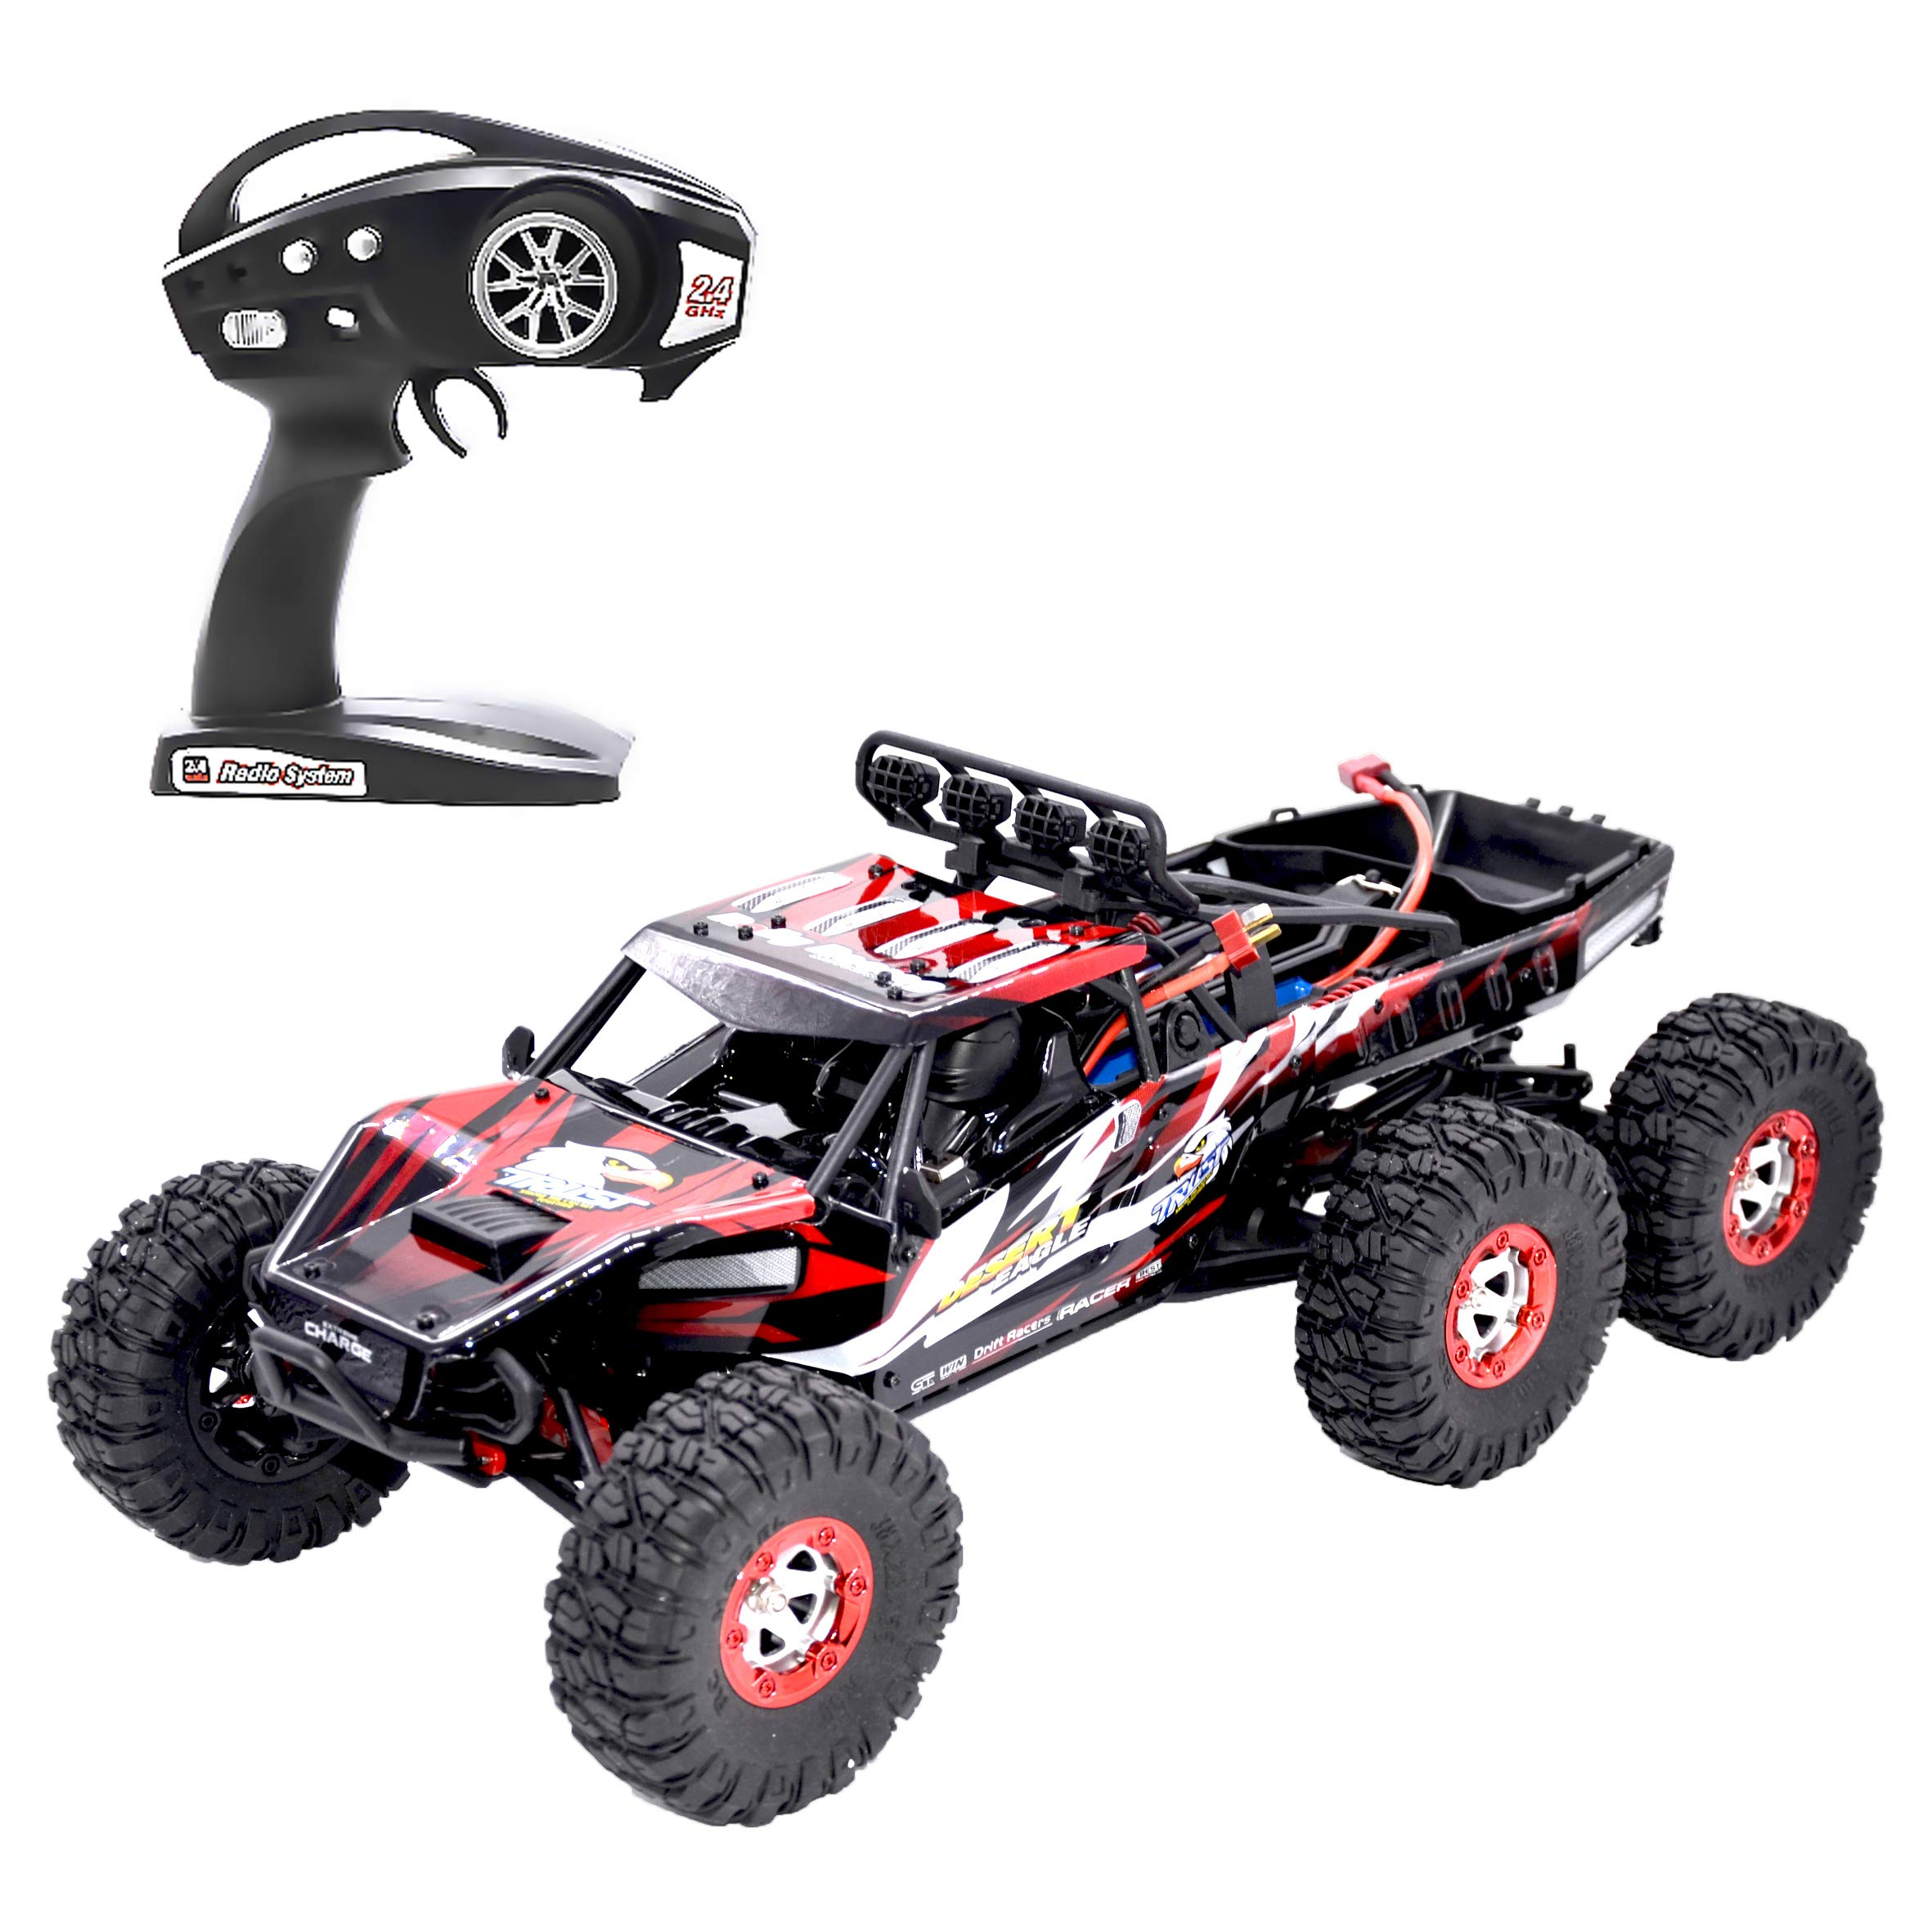 Aiitoy Fast RC Cars, 6WD 60km/h Brushless 1:12 Scale 2.4Ghz Radio Remote Control Truck, Electric Monster High Speed Off-Road Rock Crawler for Adults and Kids (FY06), Red